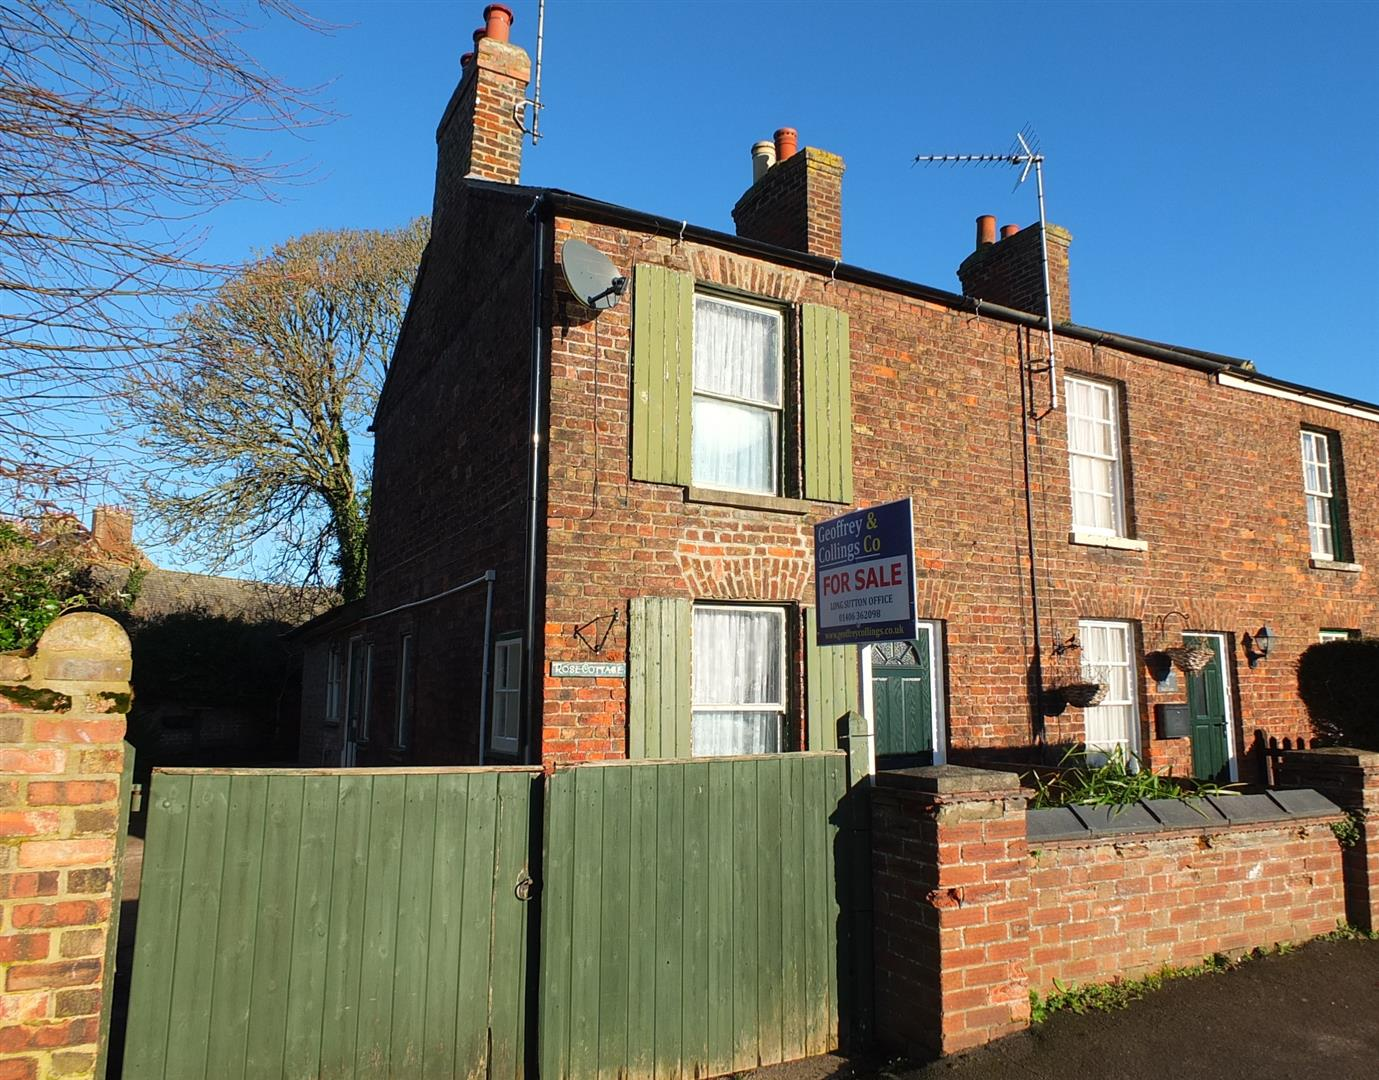 2 bed end of terrace house for sale in Long Sutton Spalding, PE12 9HA, PE12